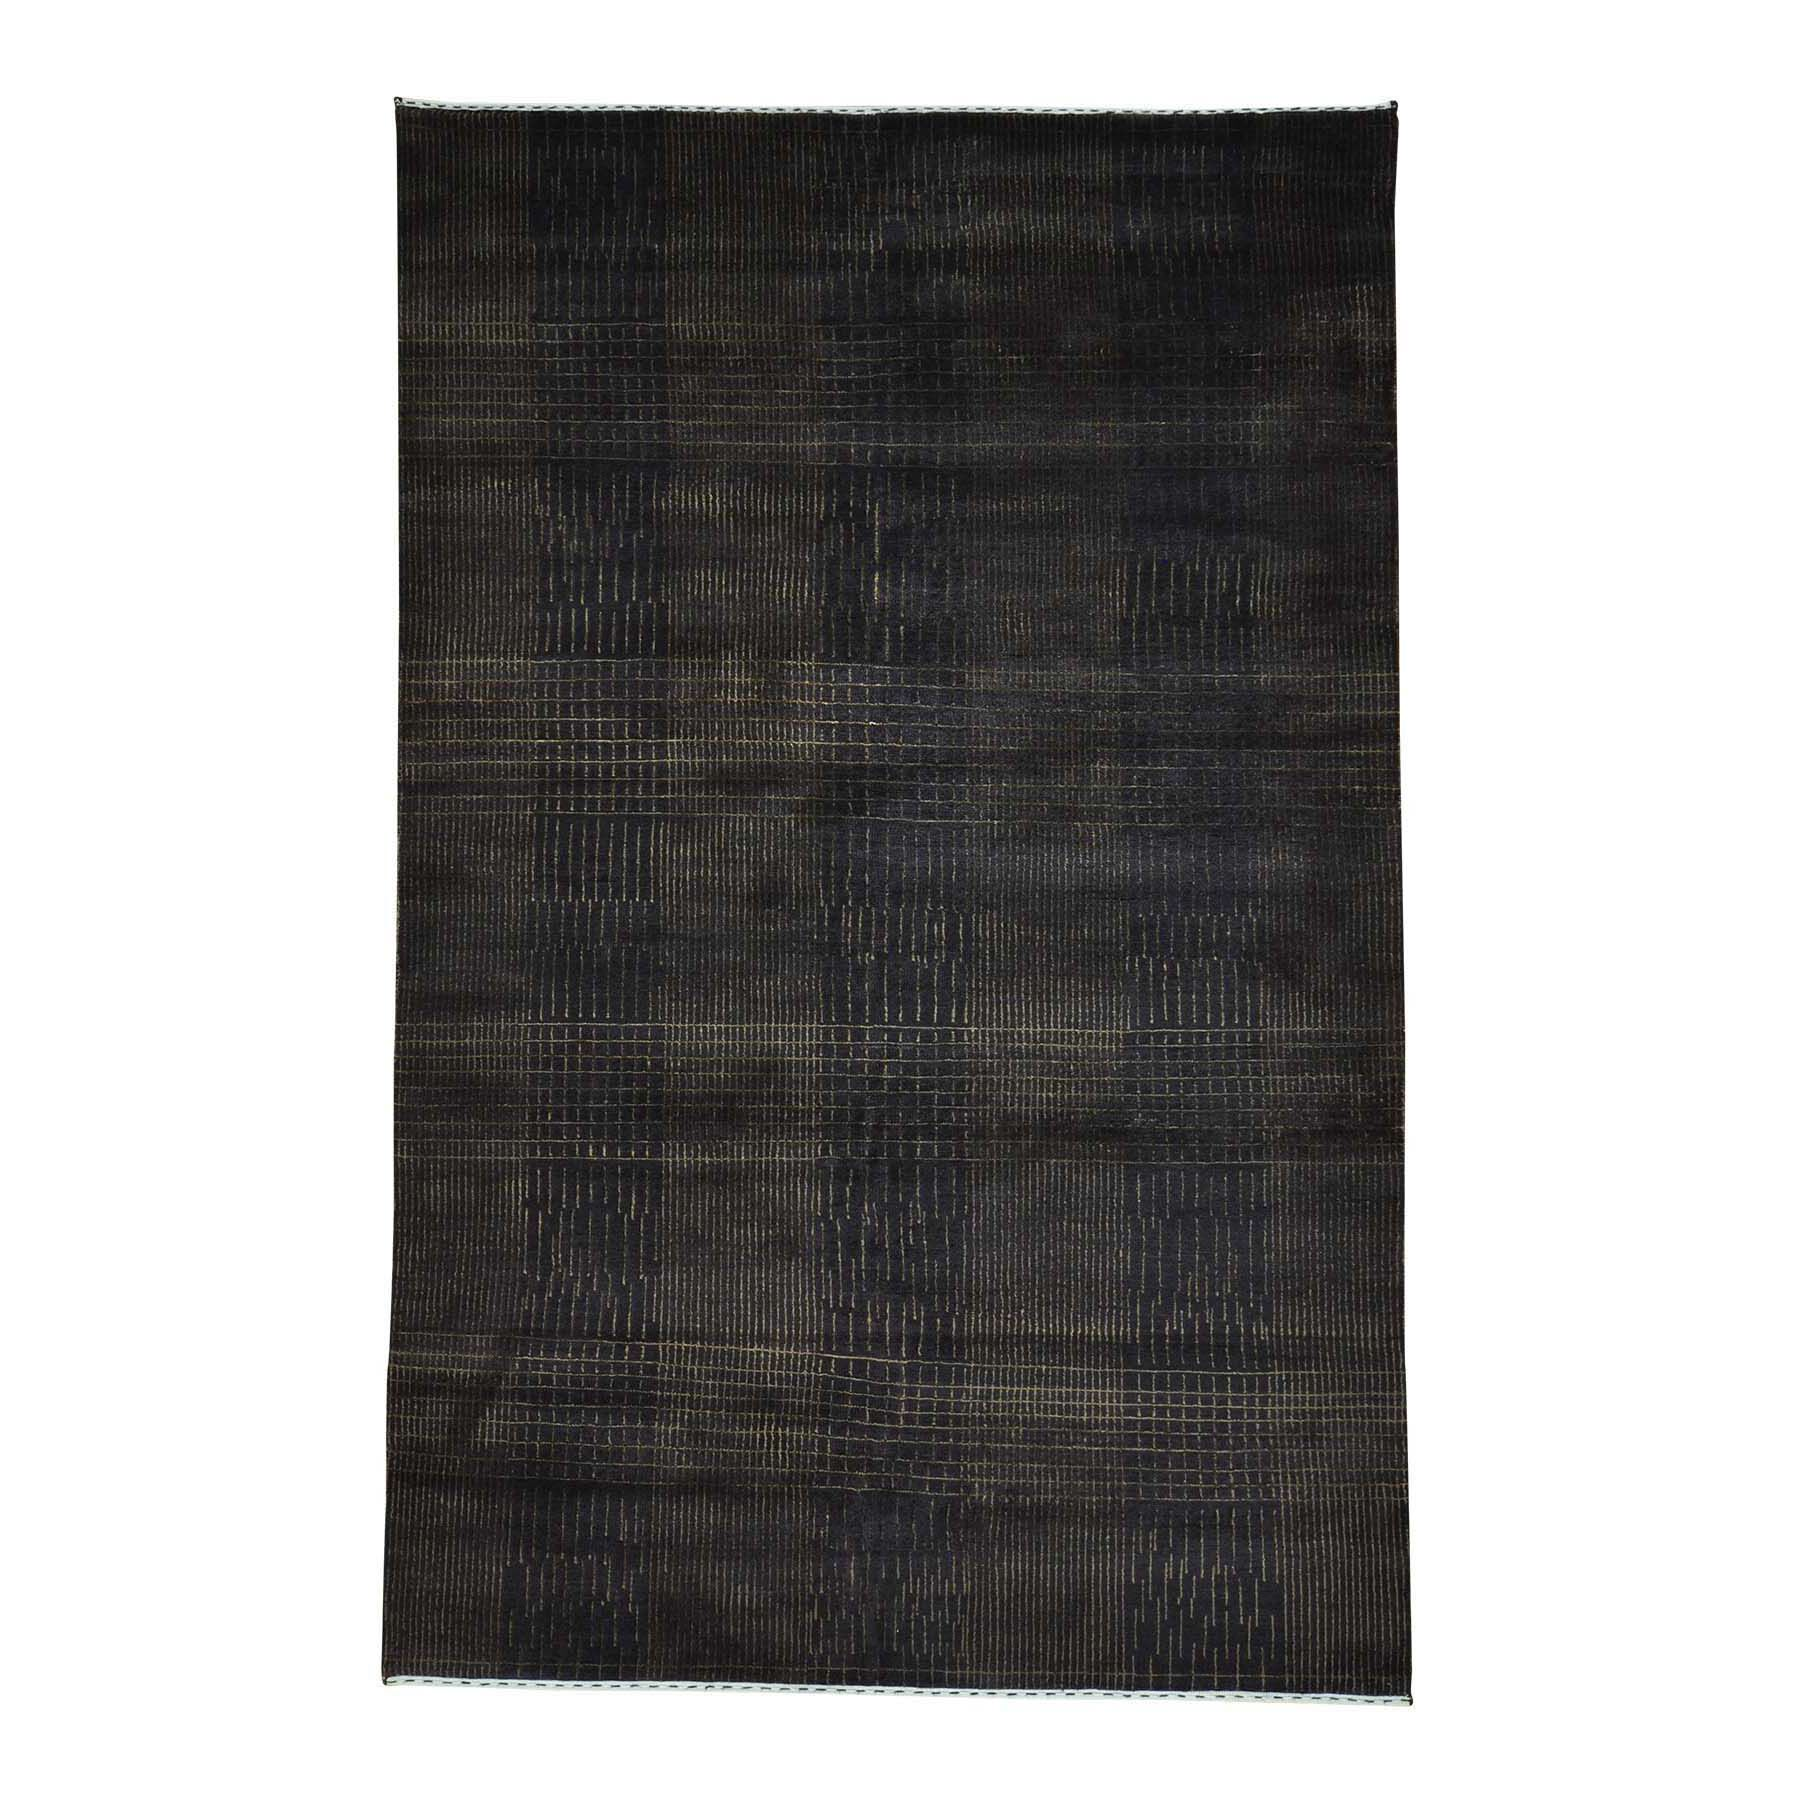 One-of-a-Kind Tone on Tone Nepali Hand-Knotted Chocolate Brown Area Rug